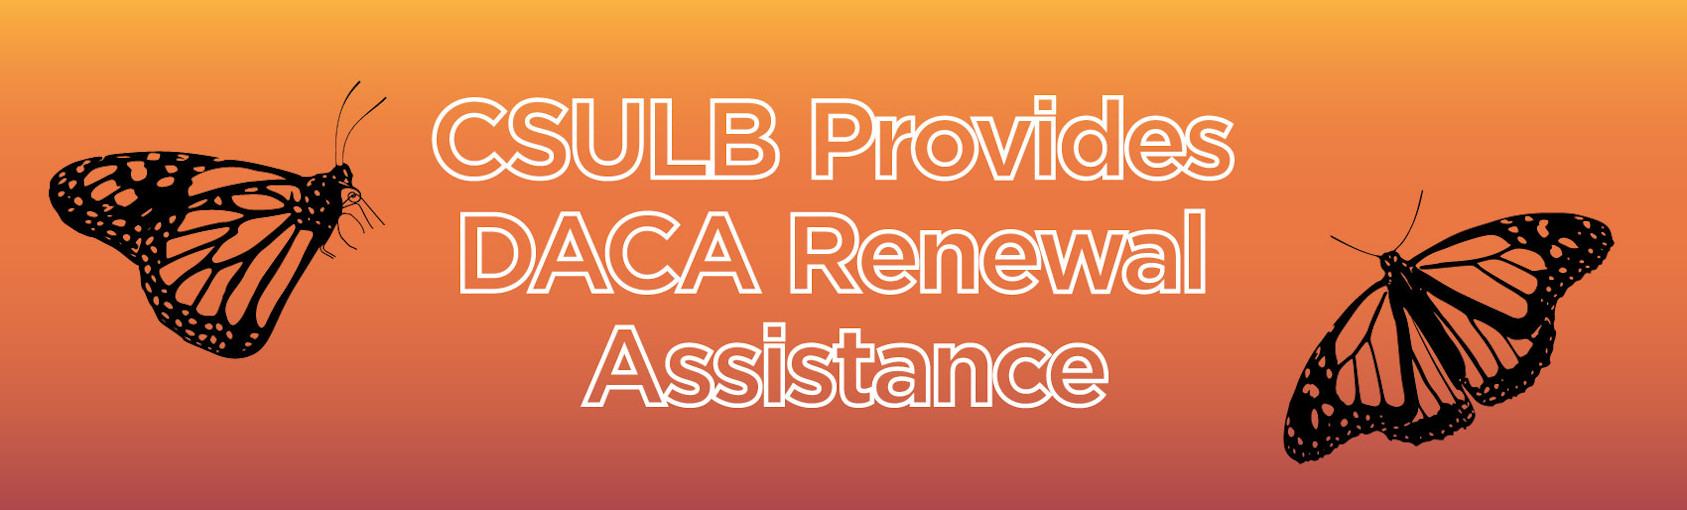 CSULB Provides DACA Renewal Assistance Banner